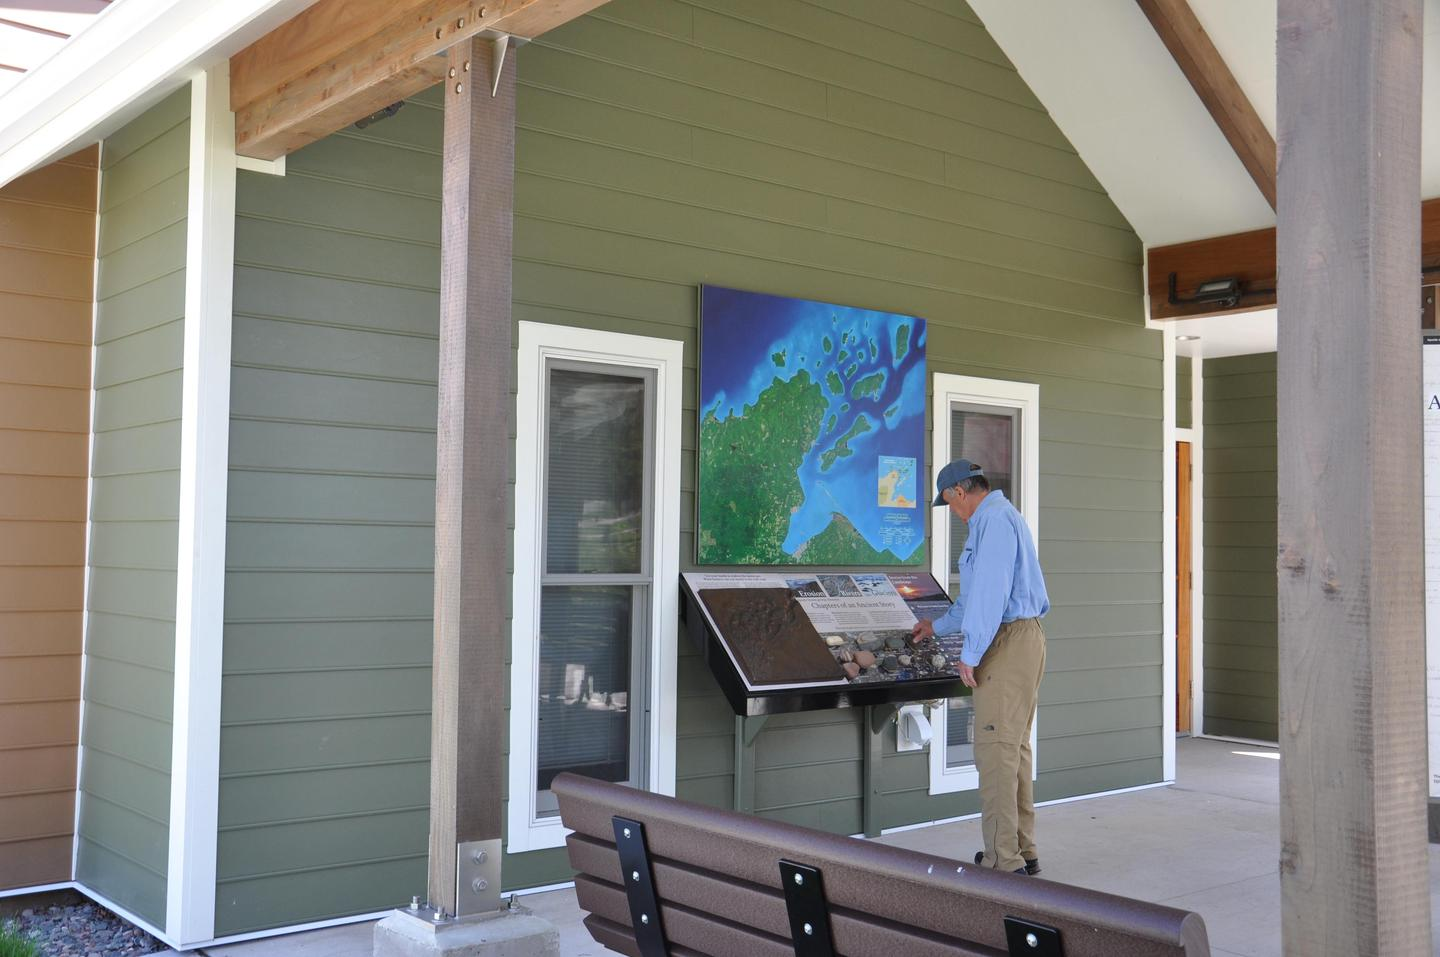 Wall map with touch and audio exhibits under patio.Beneath a large map of the park, touch a 3-D model of the islands, rocks from around the park, and listen to stories of the park.